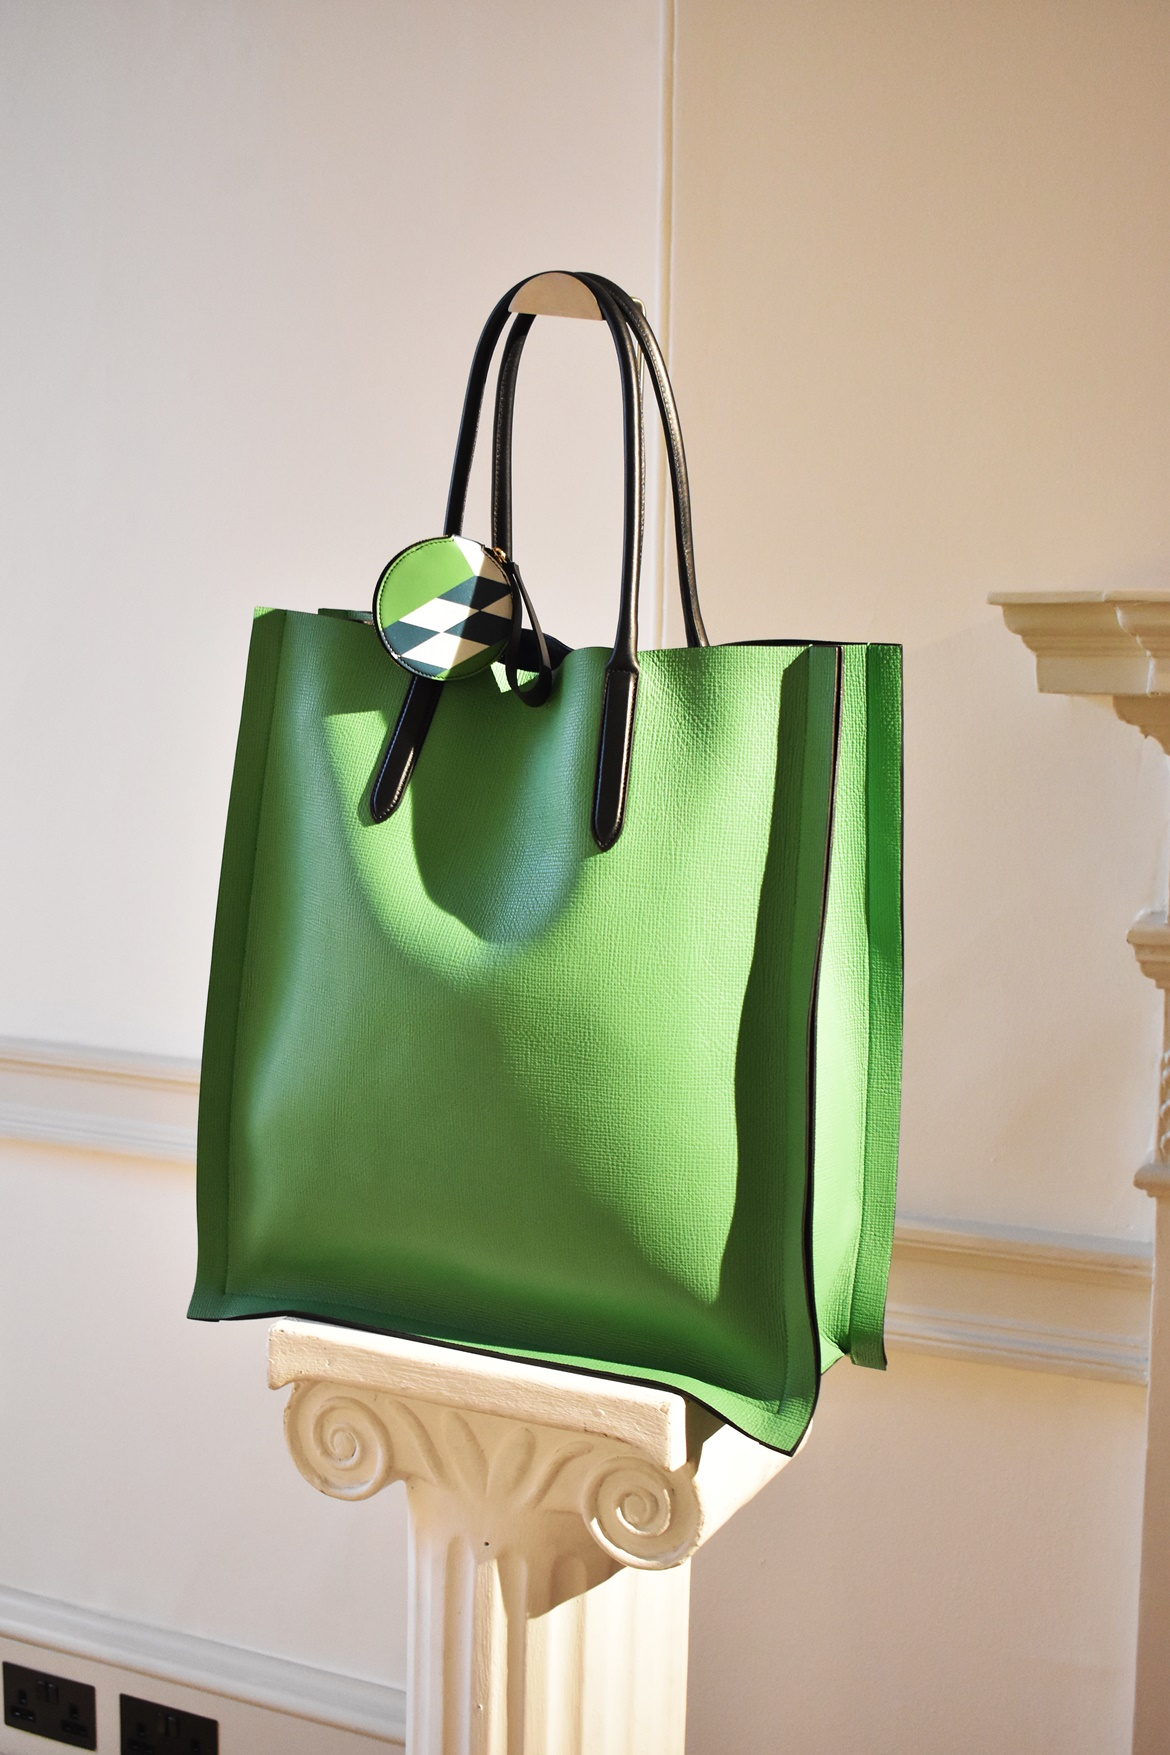 Stationery brand Smythson of Bond Street at Somerset House during LFW February 2019, Think Feel Discover